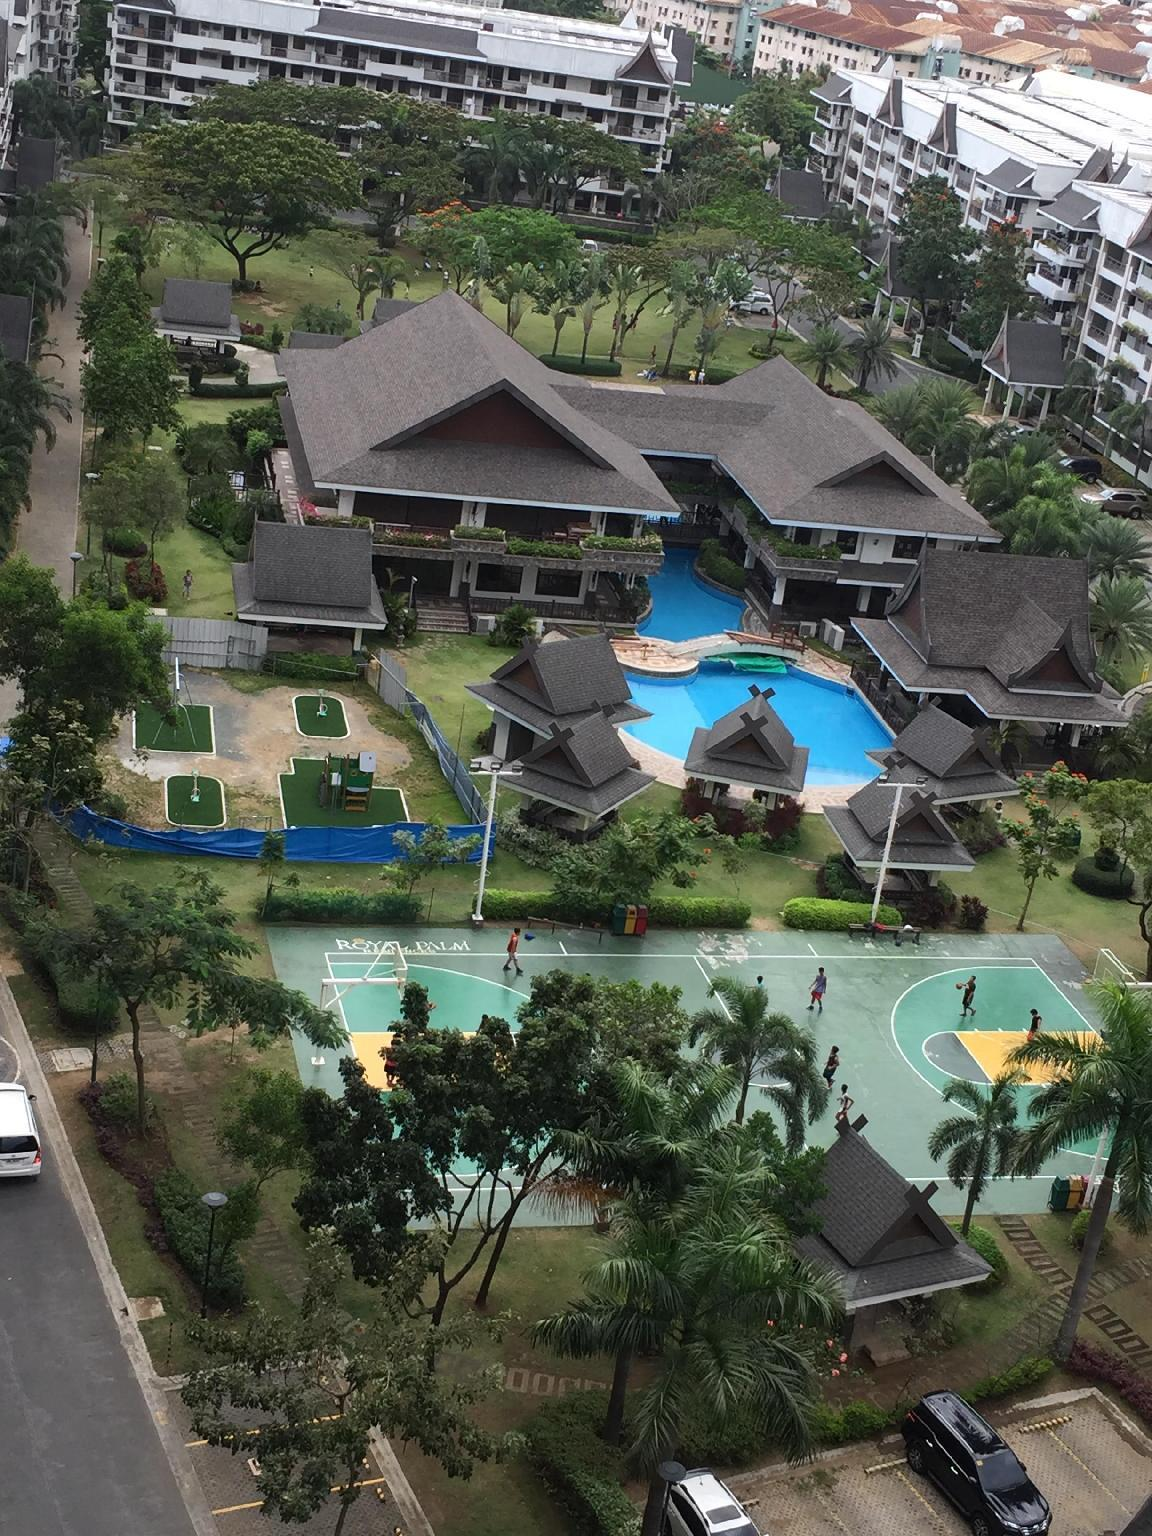 Taguig Royal Palm@17F 2 or 1bedroom w/ living room